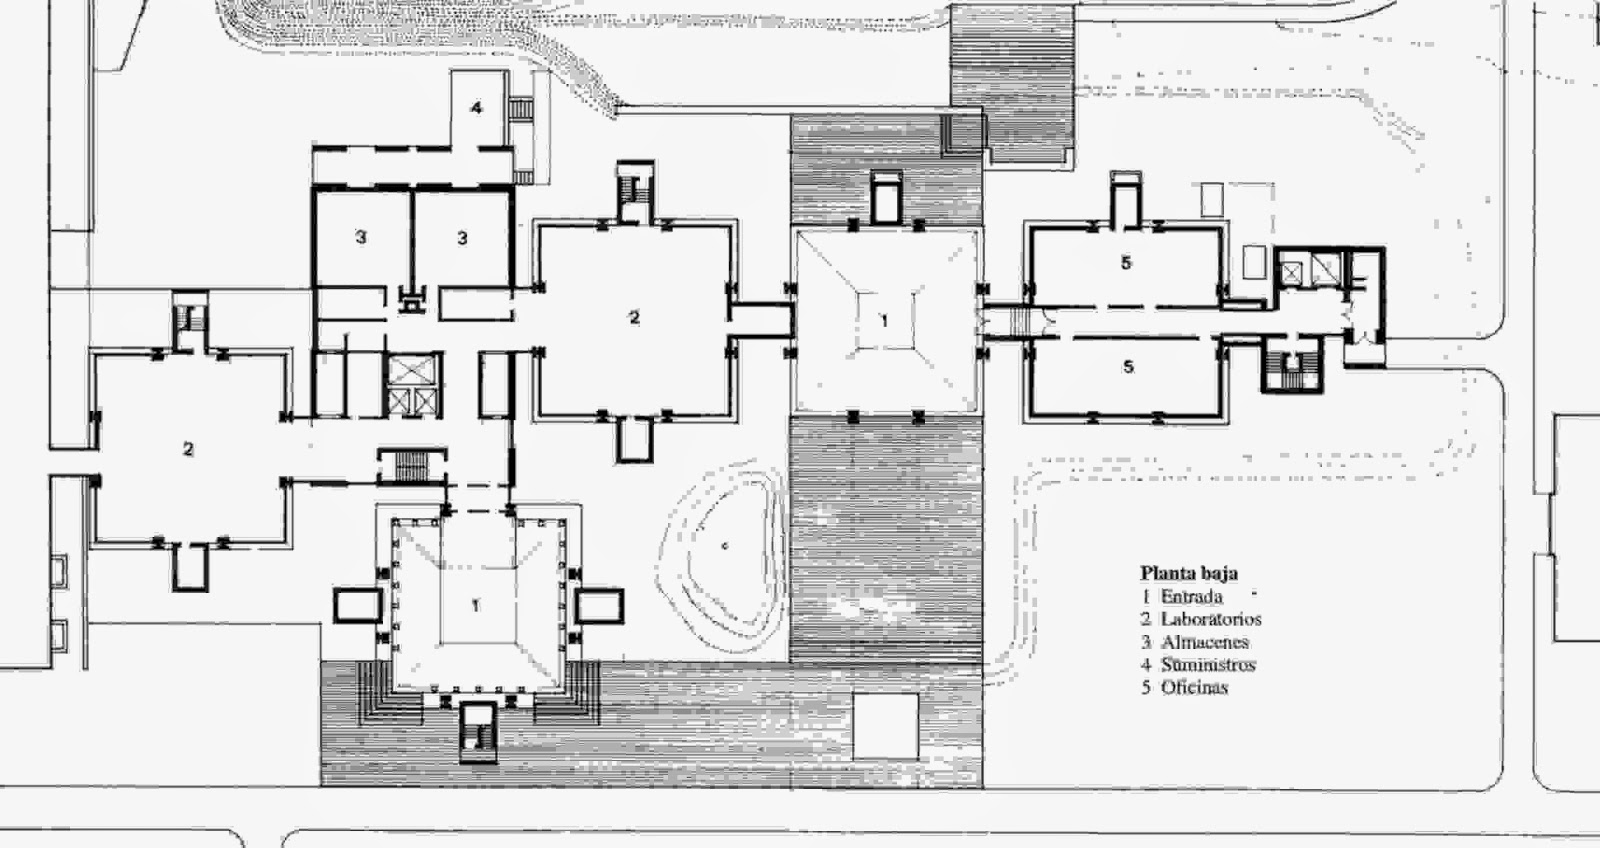 Laboratorios de Biotecnología Richards en Philadelphia | Louis Kahn